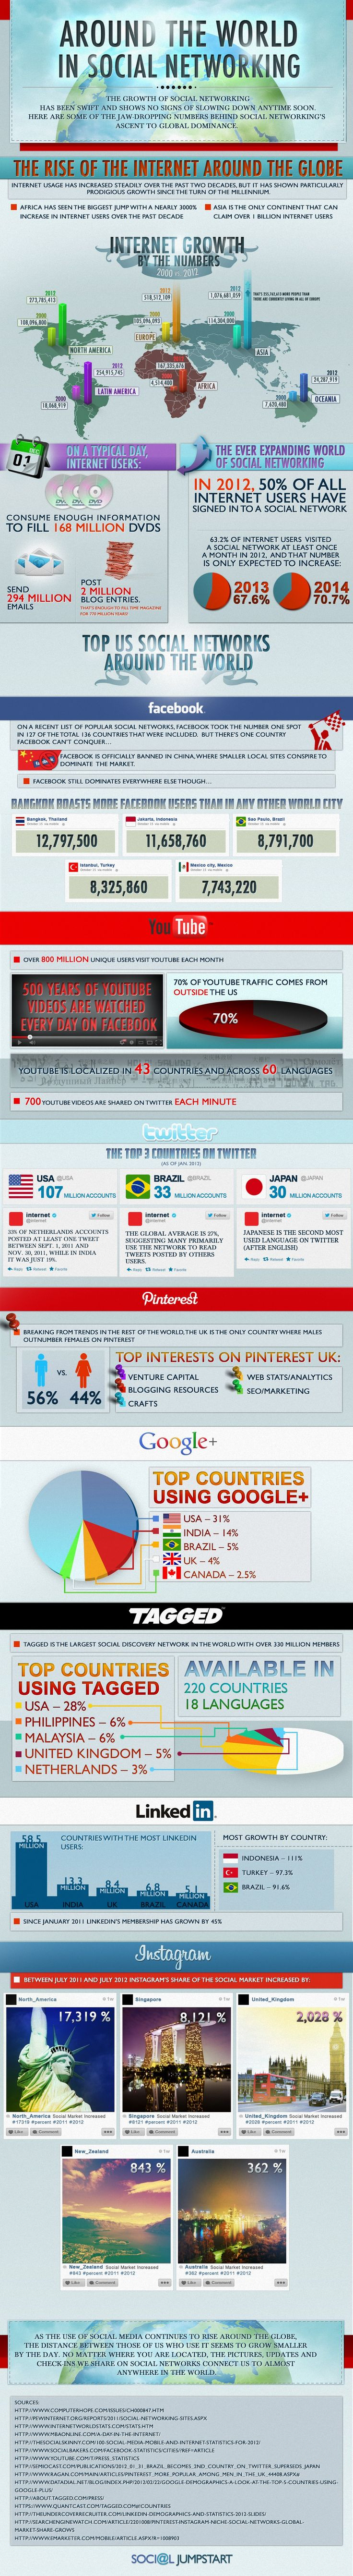 #Social #Media Networking around the World 2013 #Infographic